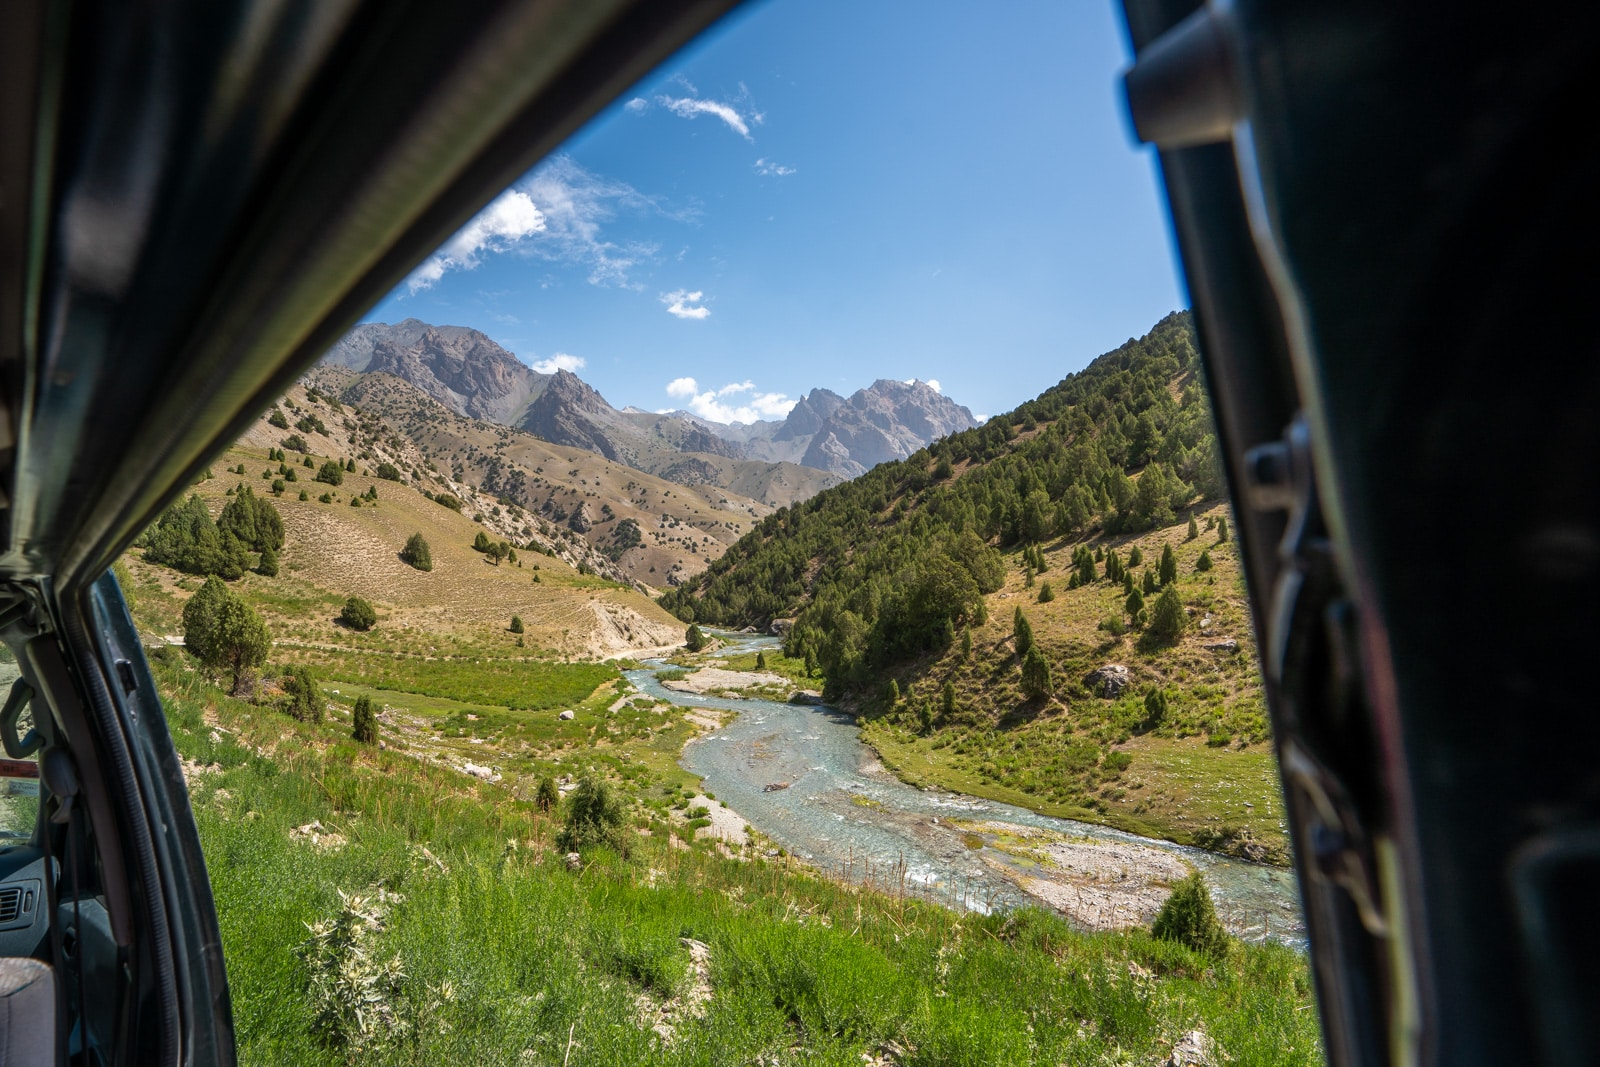 View of the Fann Mountains from inside a van